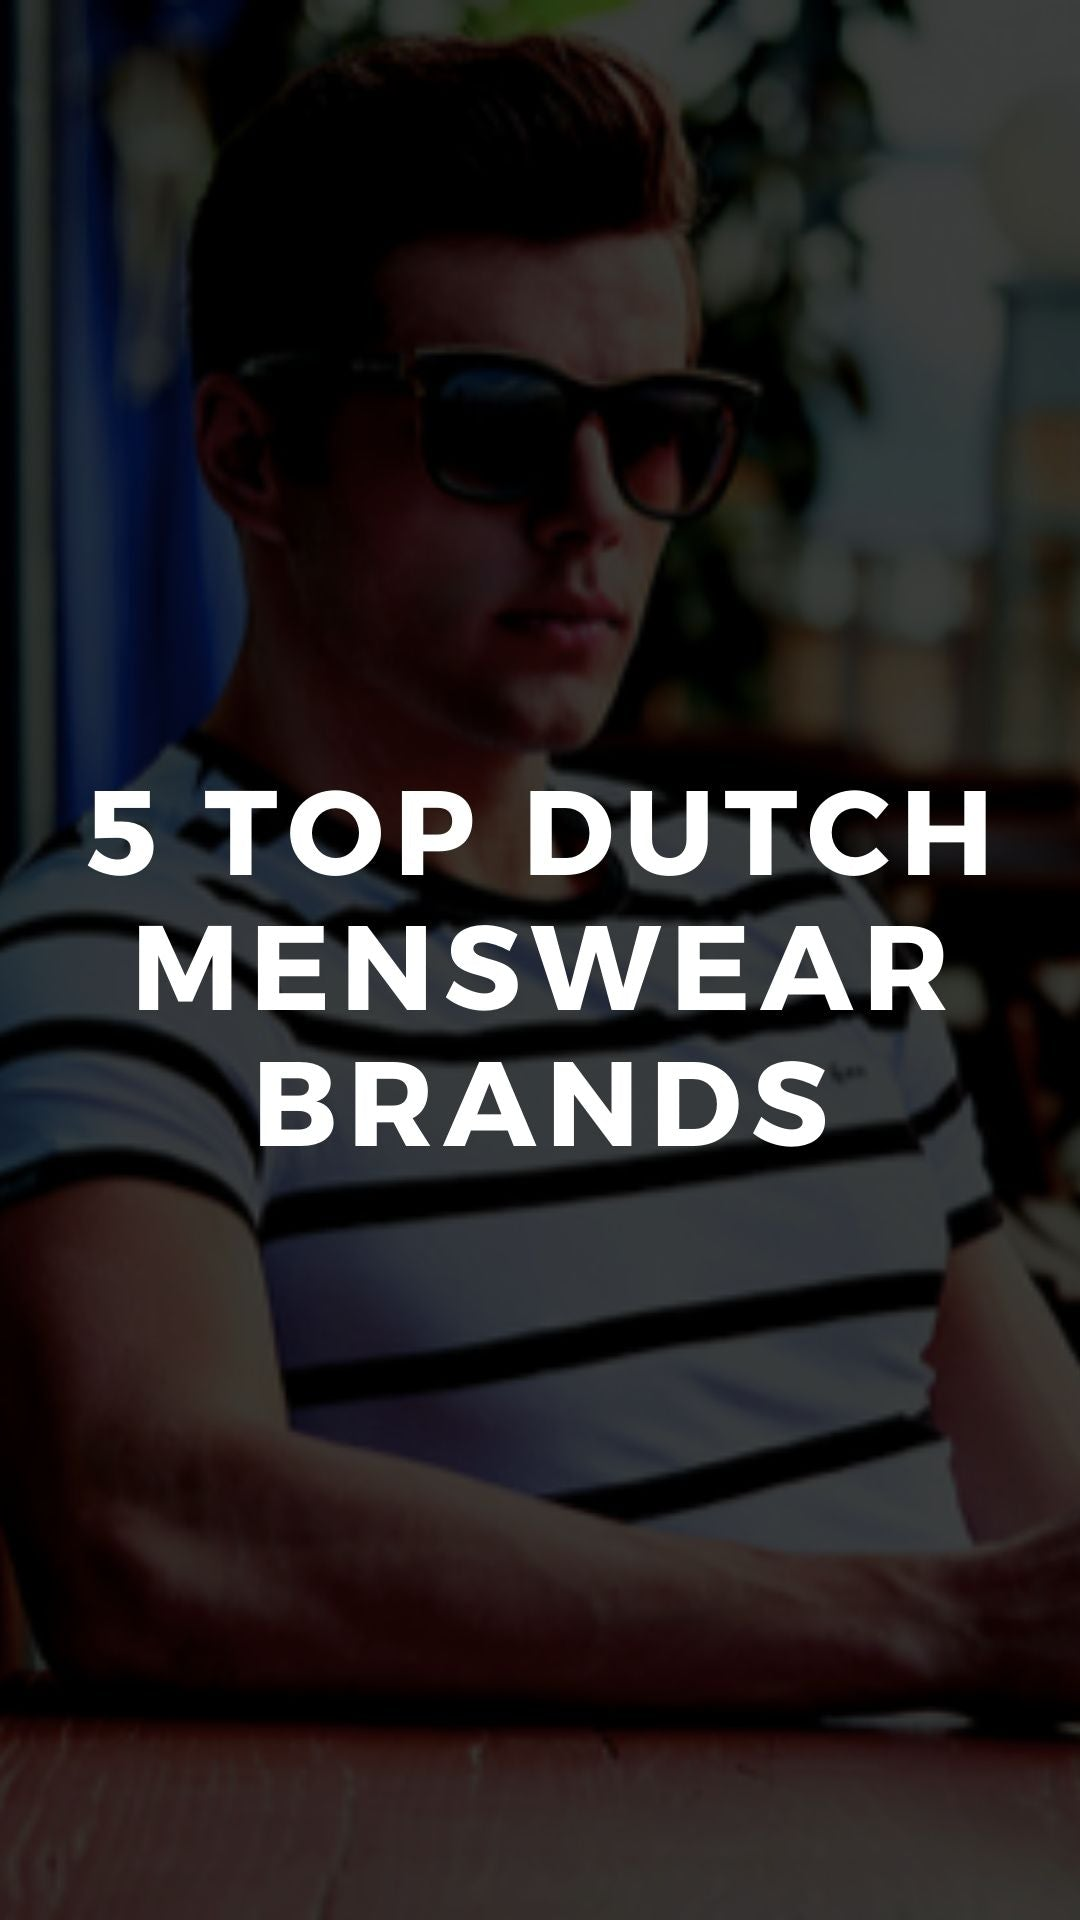 5 Top Dutch Menswear Brands